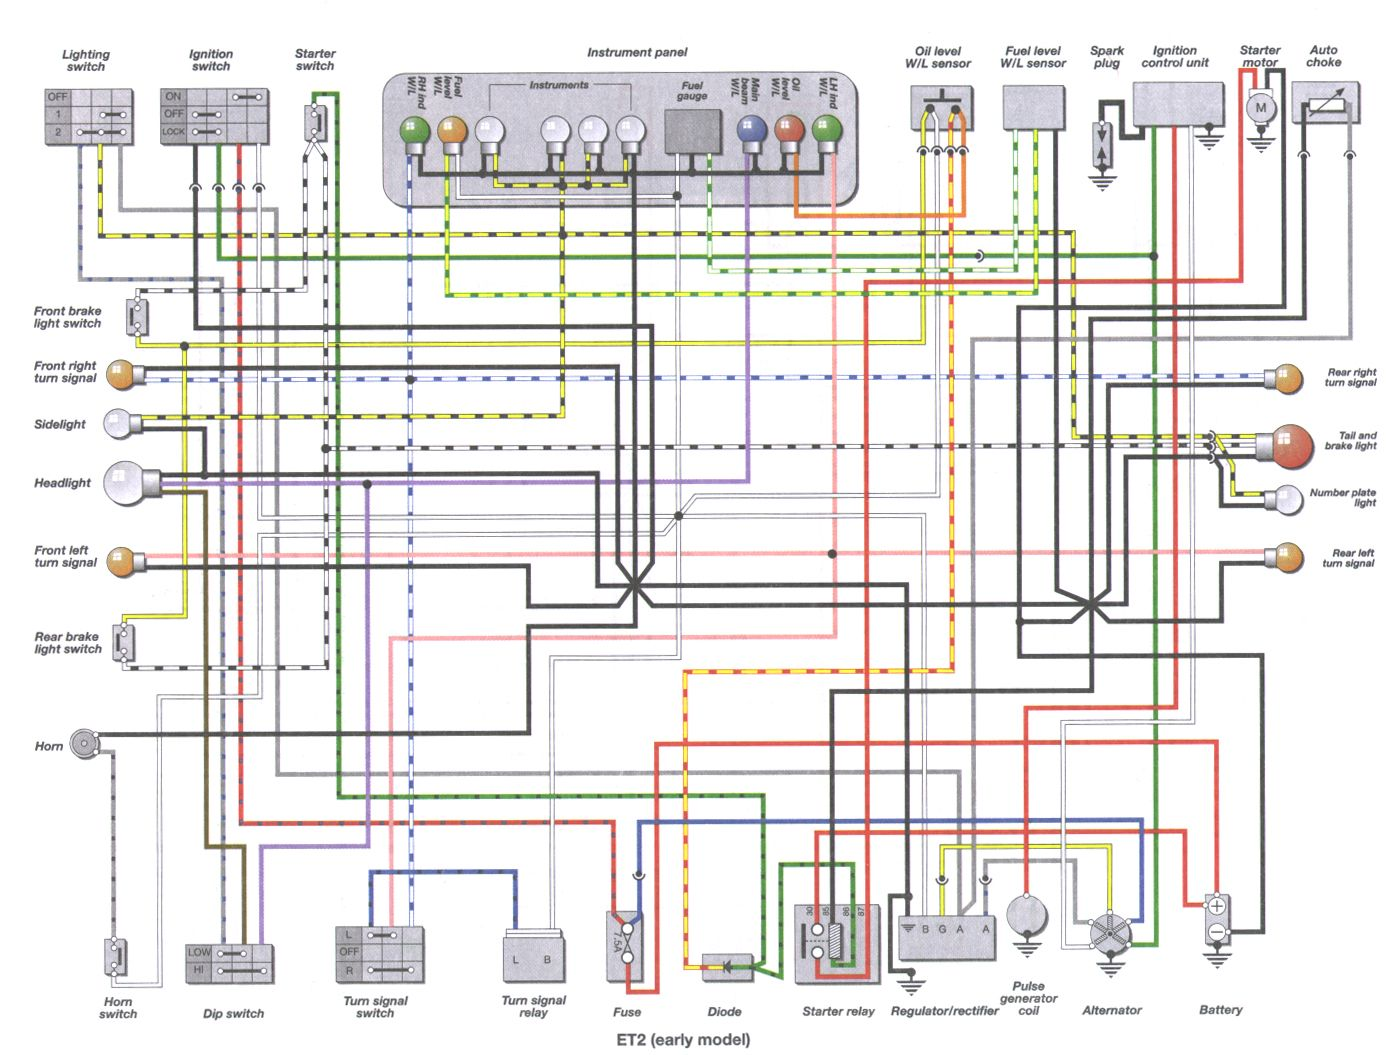 hight resolution of vespa et2 wiring diagram get free image about wiring diagram fiat 450 tractor wiring diagram fiat 750 tractor wiring diagram